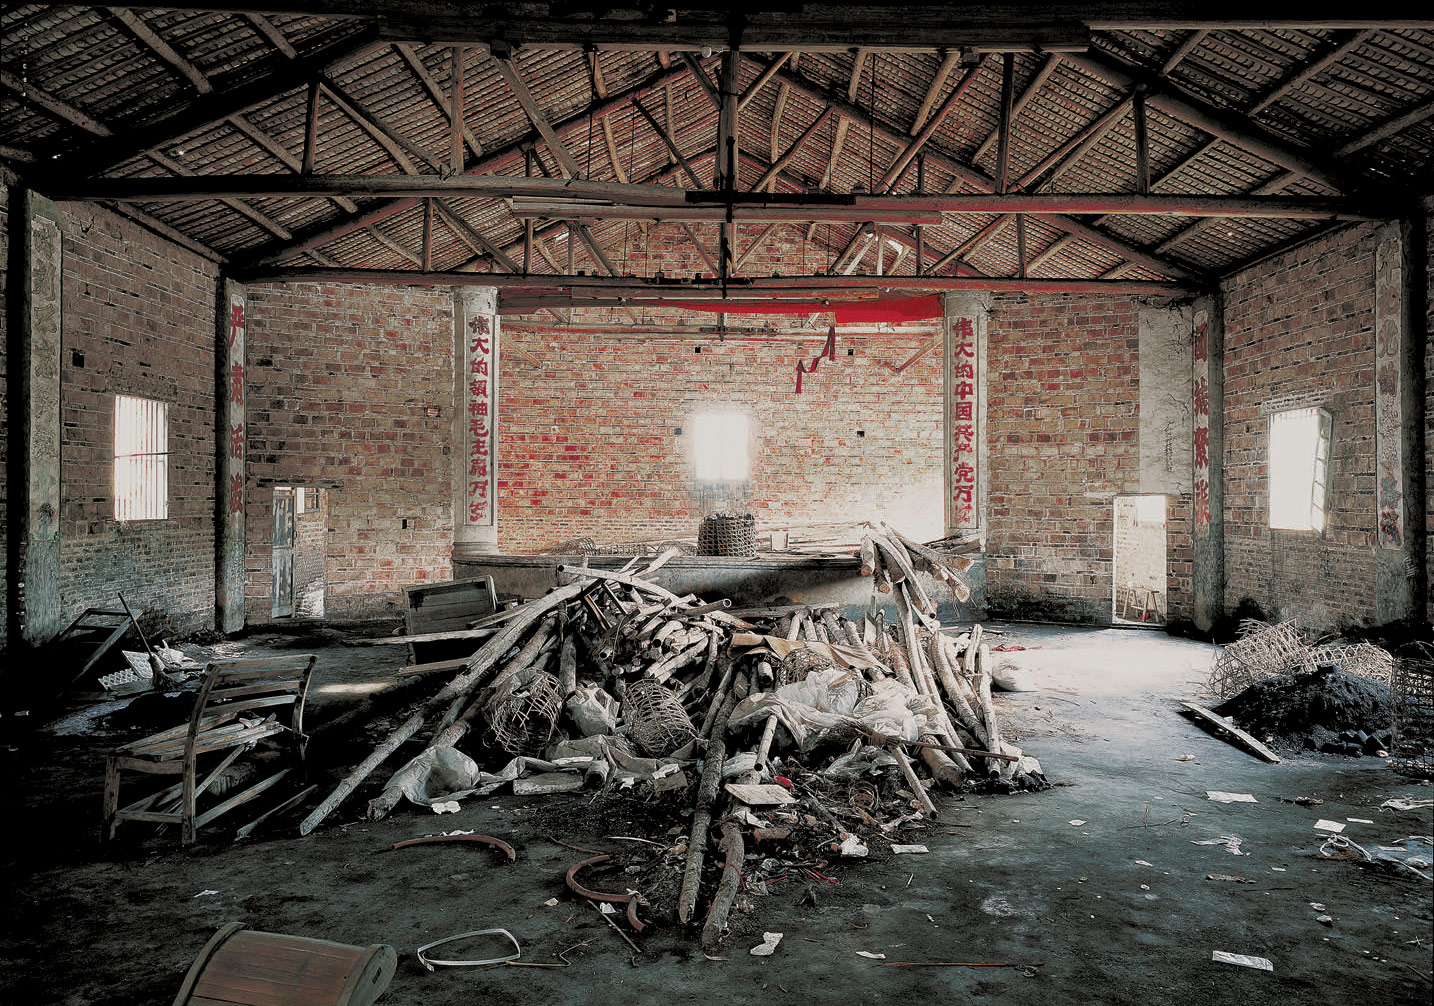 Shao Yinong & Mu Chen,The Assembly Hall Series, Xiaju 120cm×88cm color photograph 2003 edition: 8+2AP